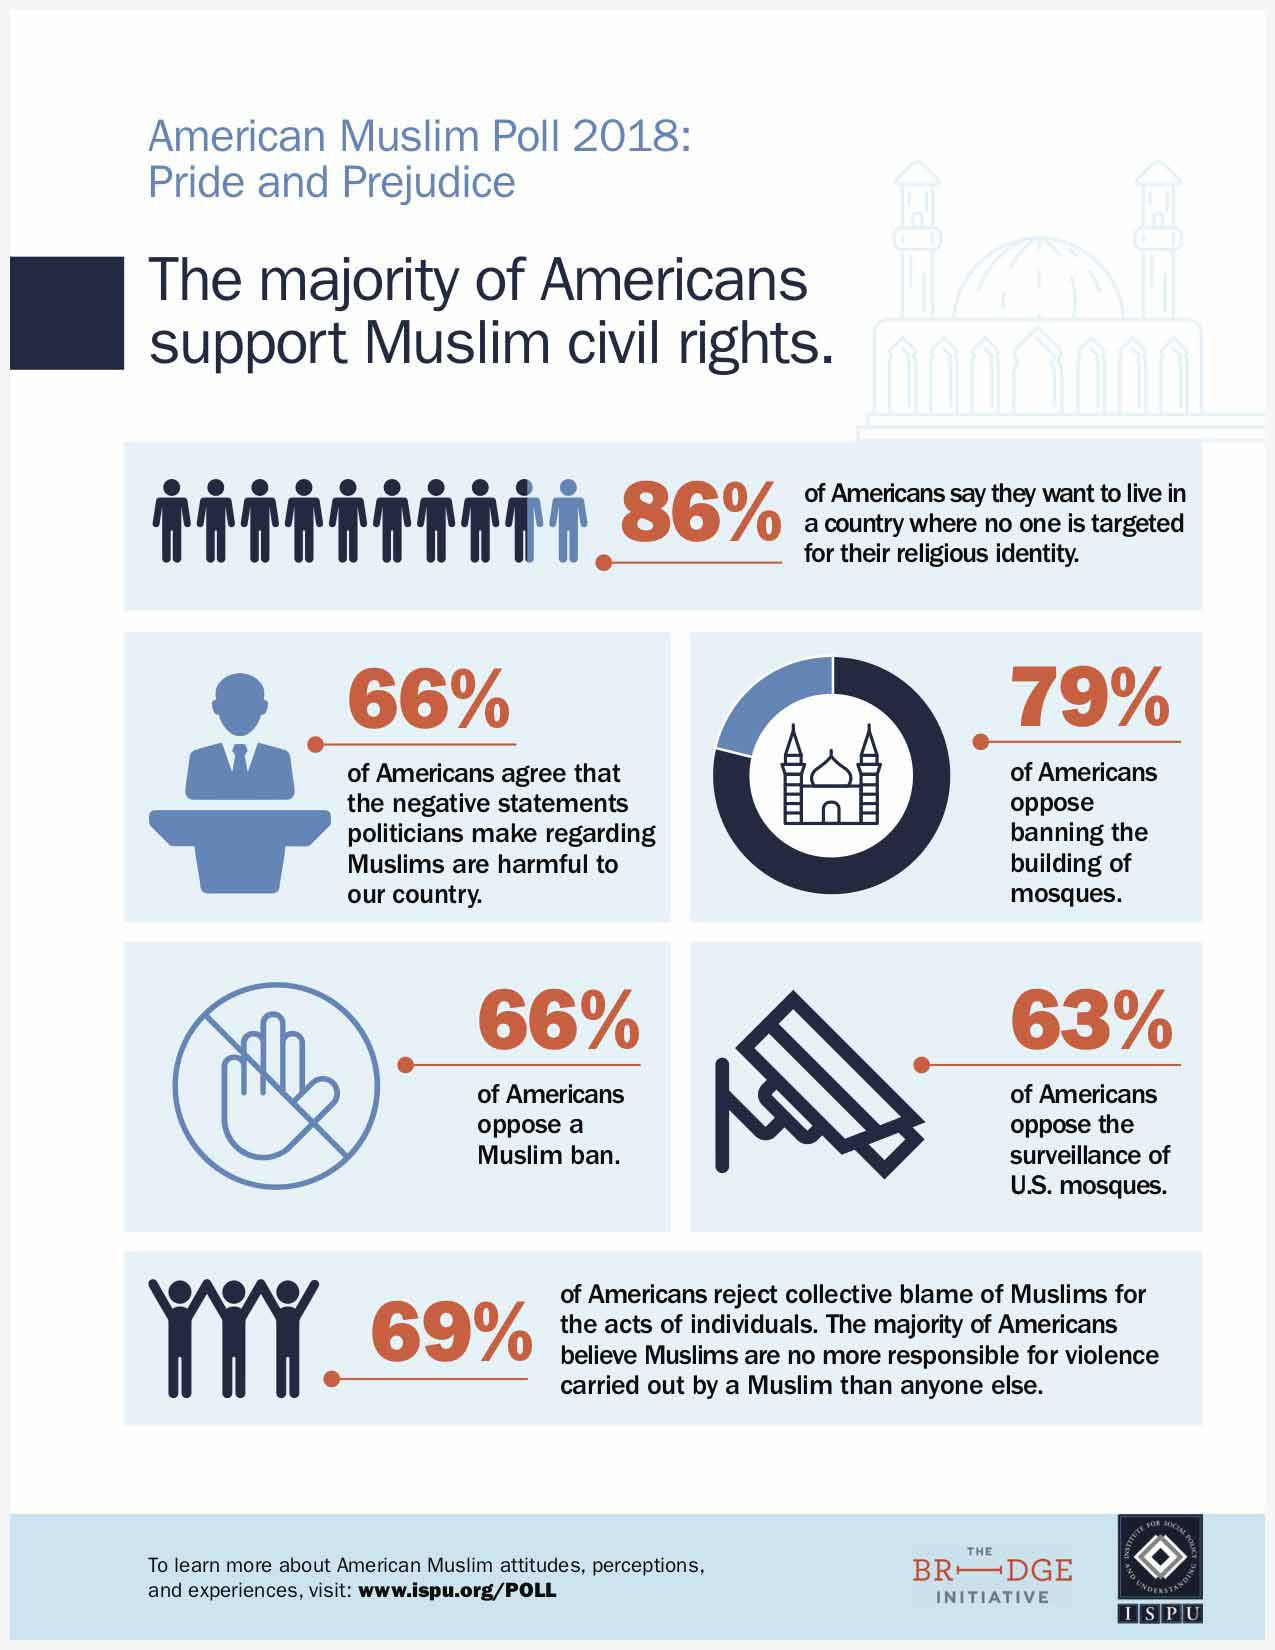 The majority of Americans support Muslim civil rights infographic